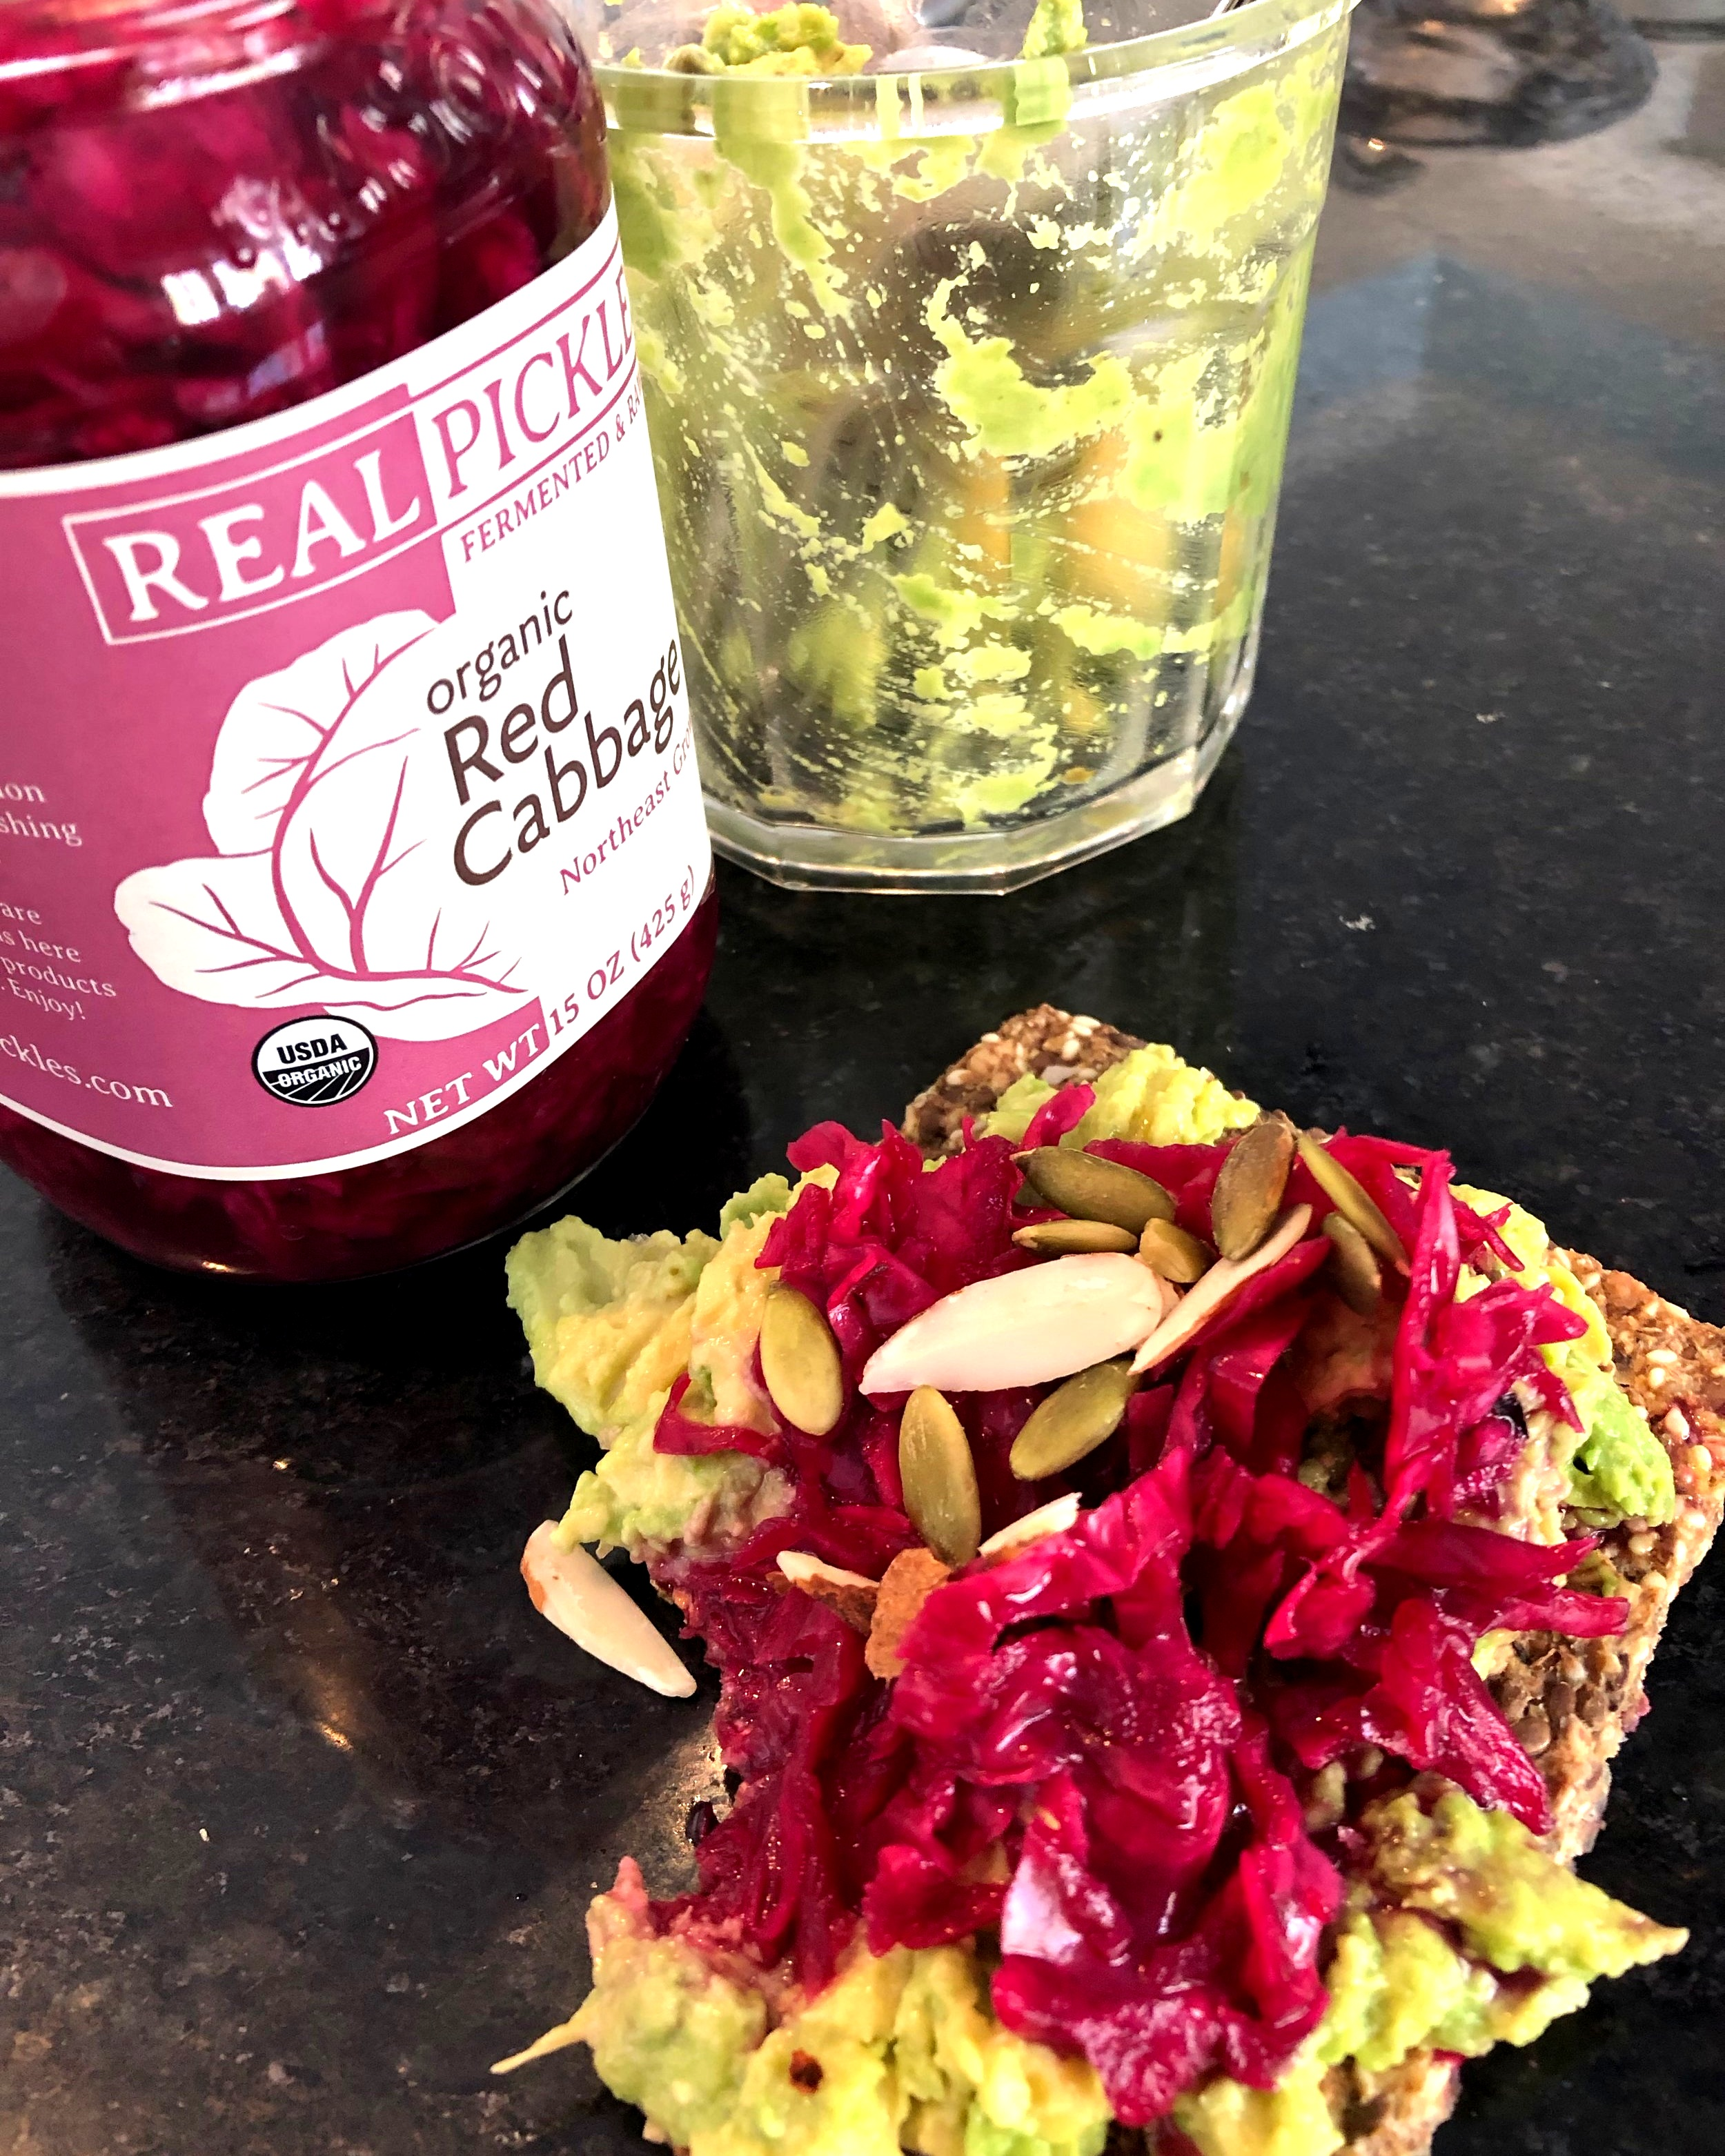 Avocado mash with pickled red cabbage and mixed nuts slathered on a Trader Joe's GF Crispbread is nutritional nirvana!